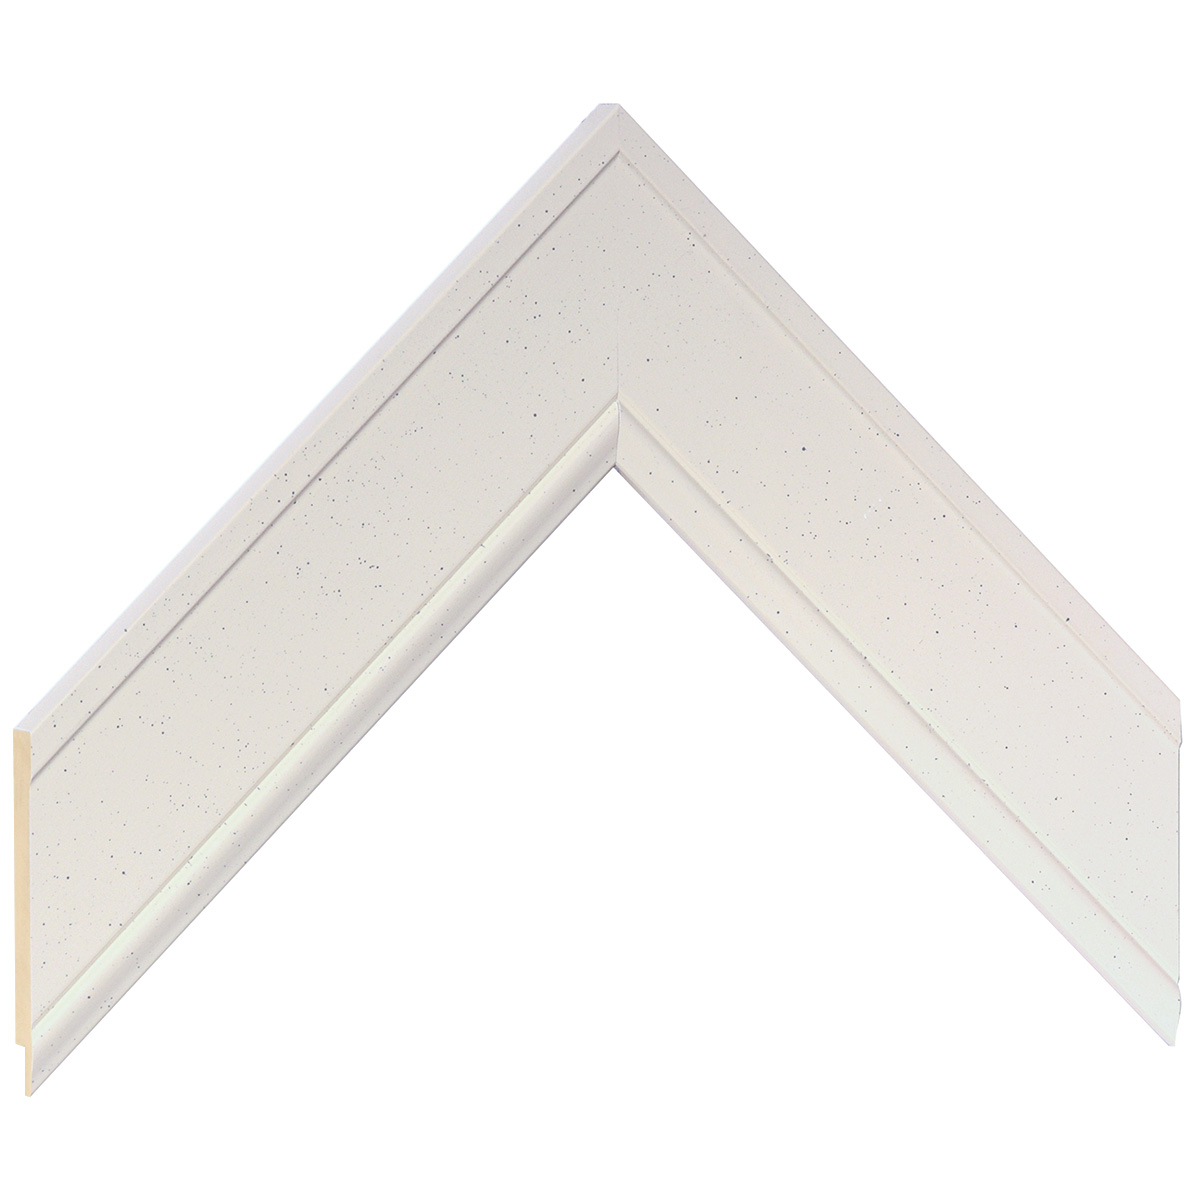 Liner ayous 45mm - flat, white without edge